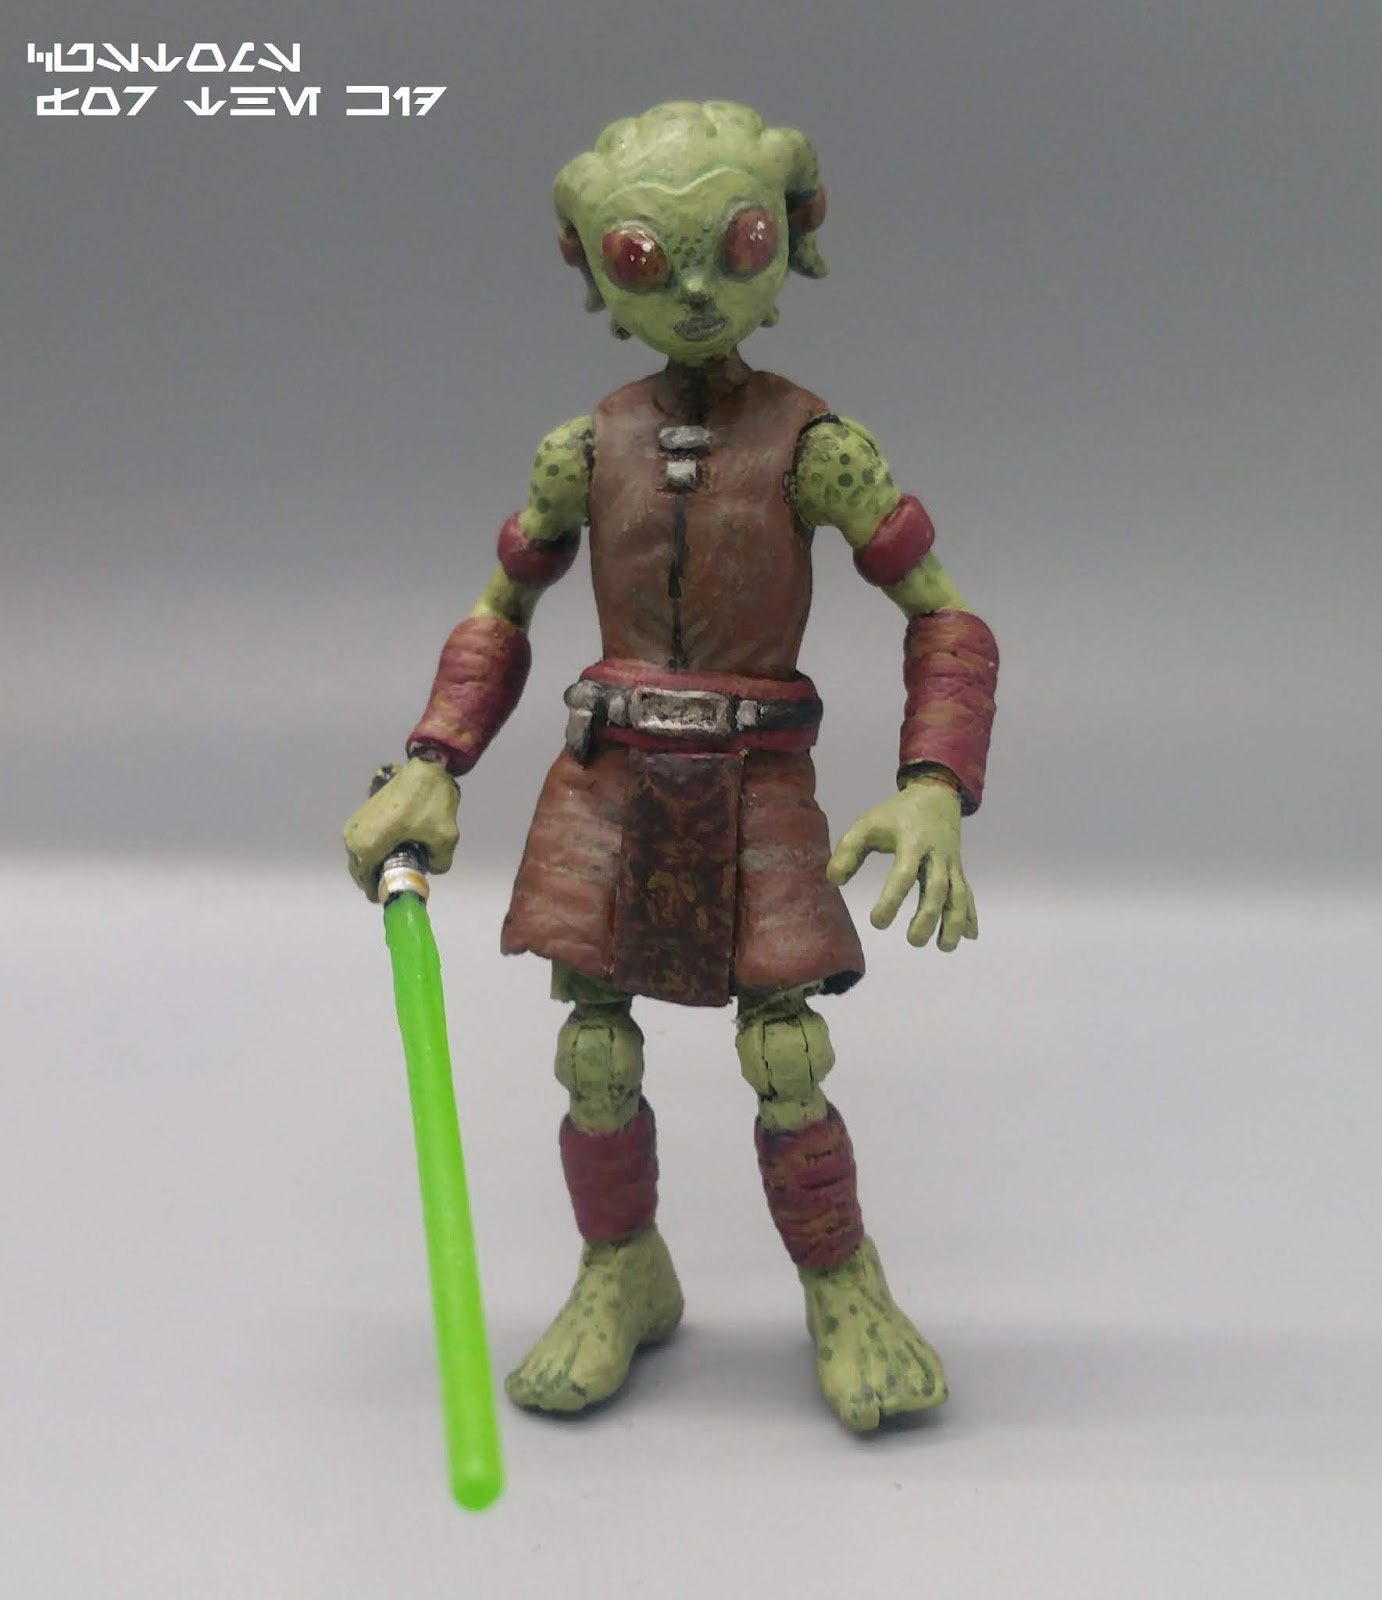 Star Wars Customs For The Kid Jedi Younglings Created By Customs For The Kid Part Two The star wars universe is filled with fun and fascinating wookiees. star wars customs for the kid jedi